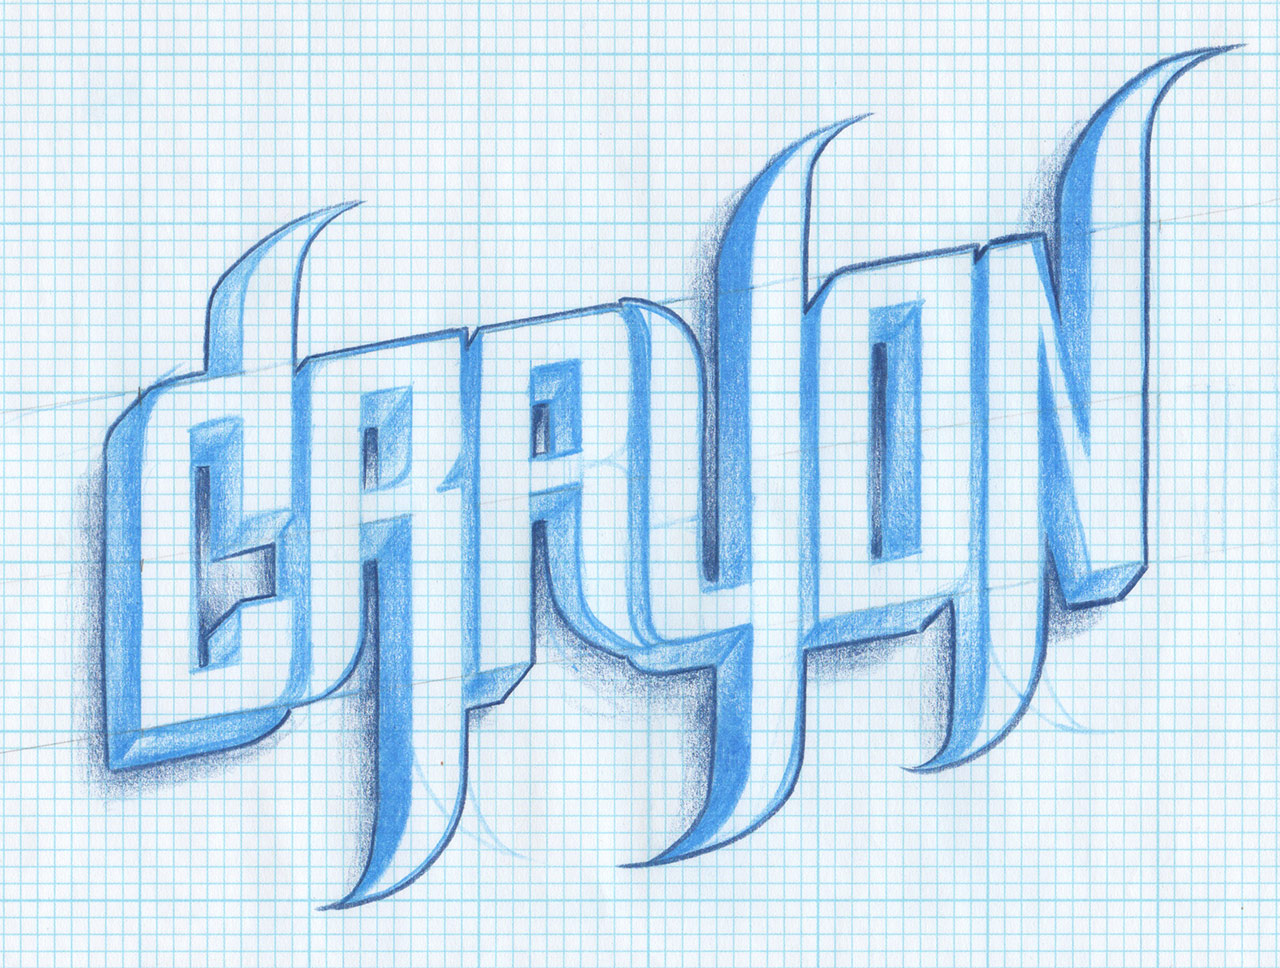 """CRAYON"" Hand sketched in the style of the ""Graffick"" font family."